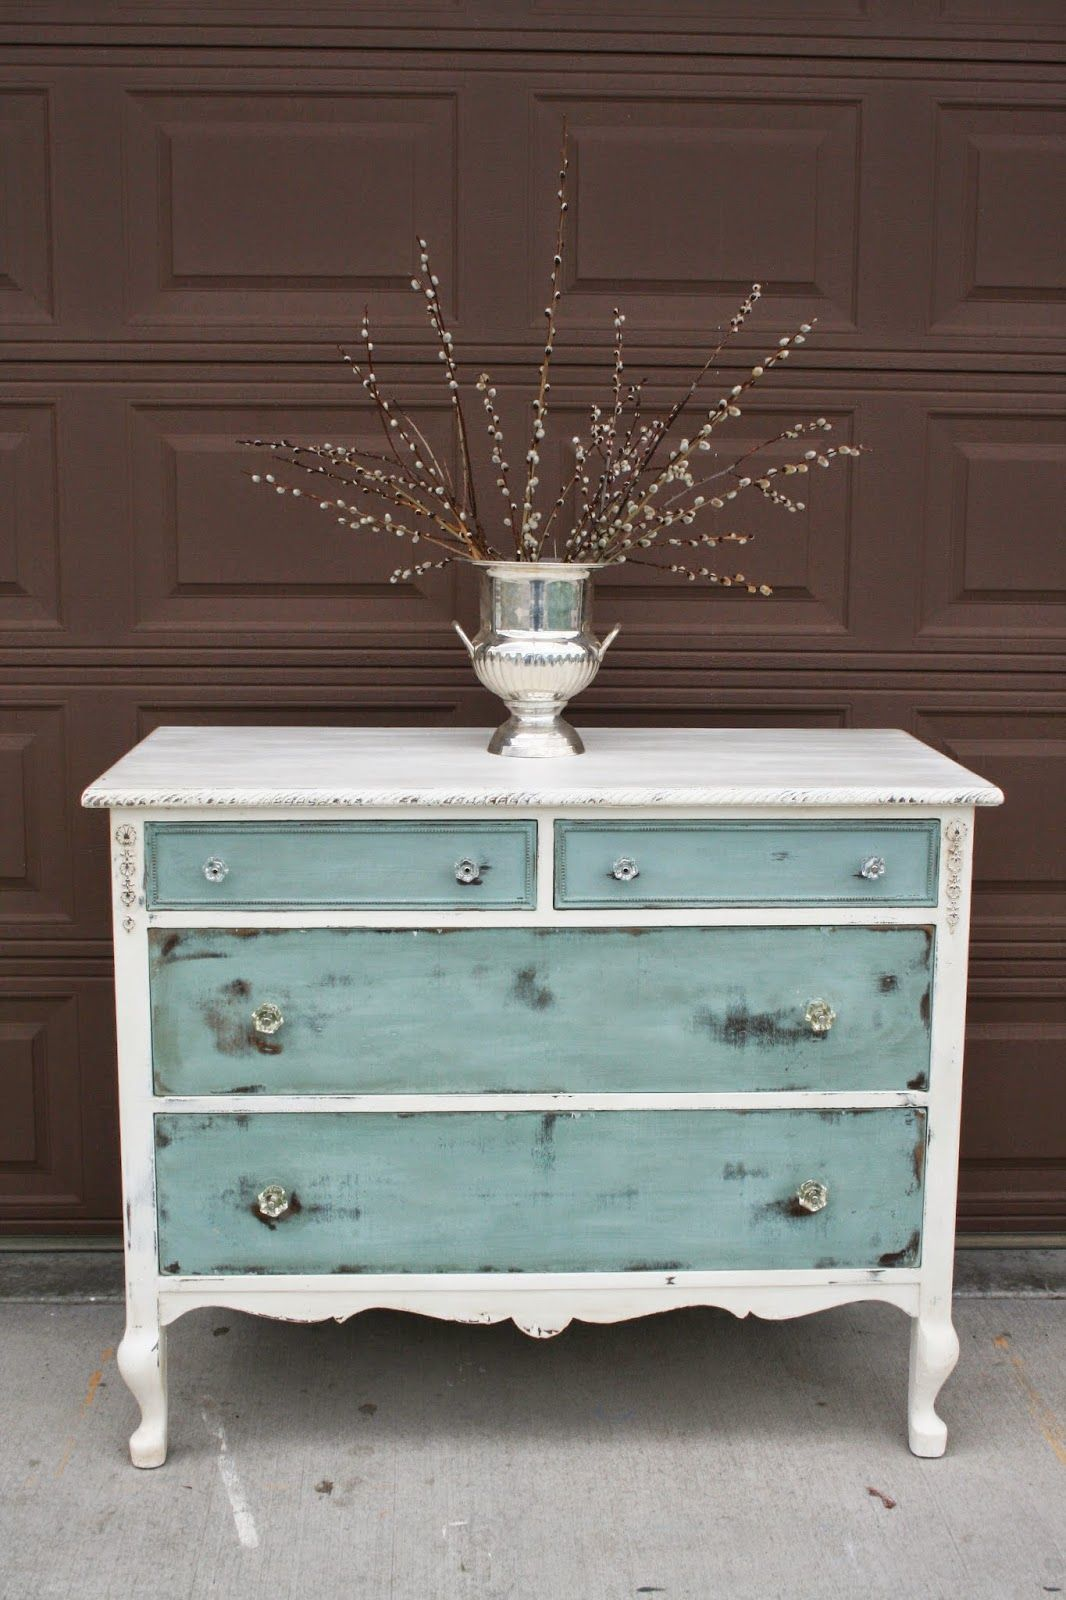 white with turquoise Más Restored Dresser, Refurbished Dressers, Antique ... - ANNIE SLOAN DUCK EGG & CC CALDWELLS At Long Last... ⊱♢♢LOVE YOU